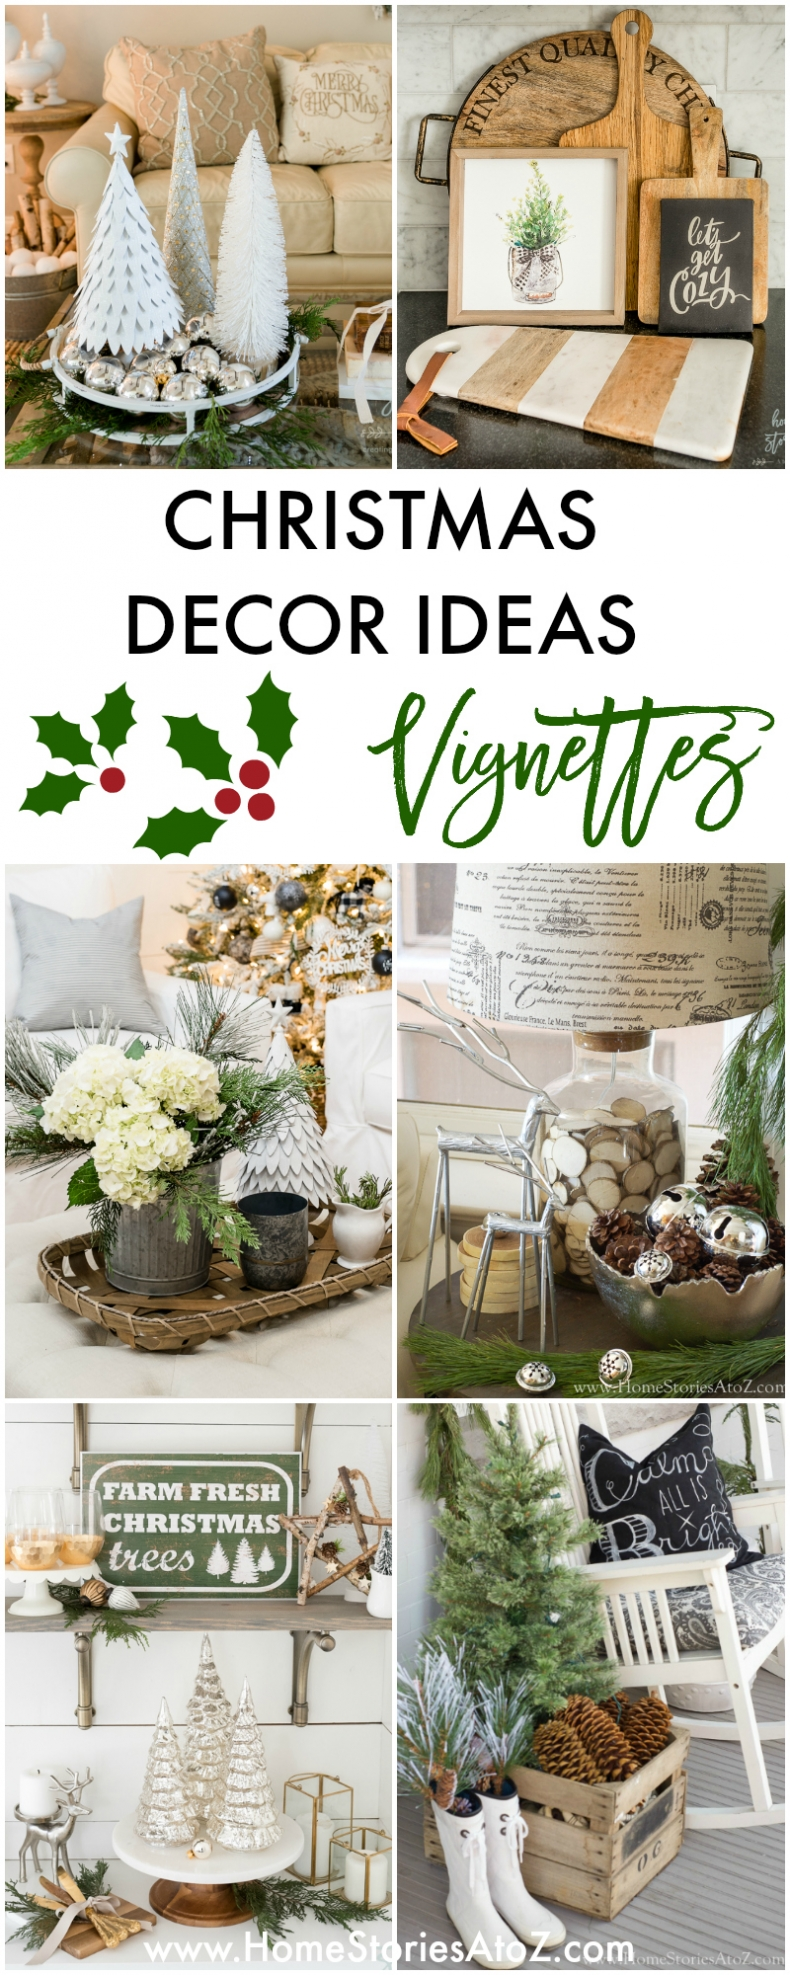 Christmas Decor Ideas - Christmas Vignettes by Home Stories A to Z